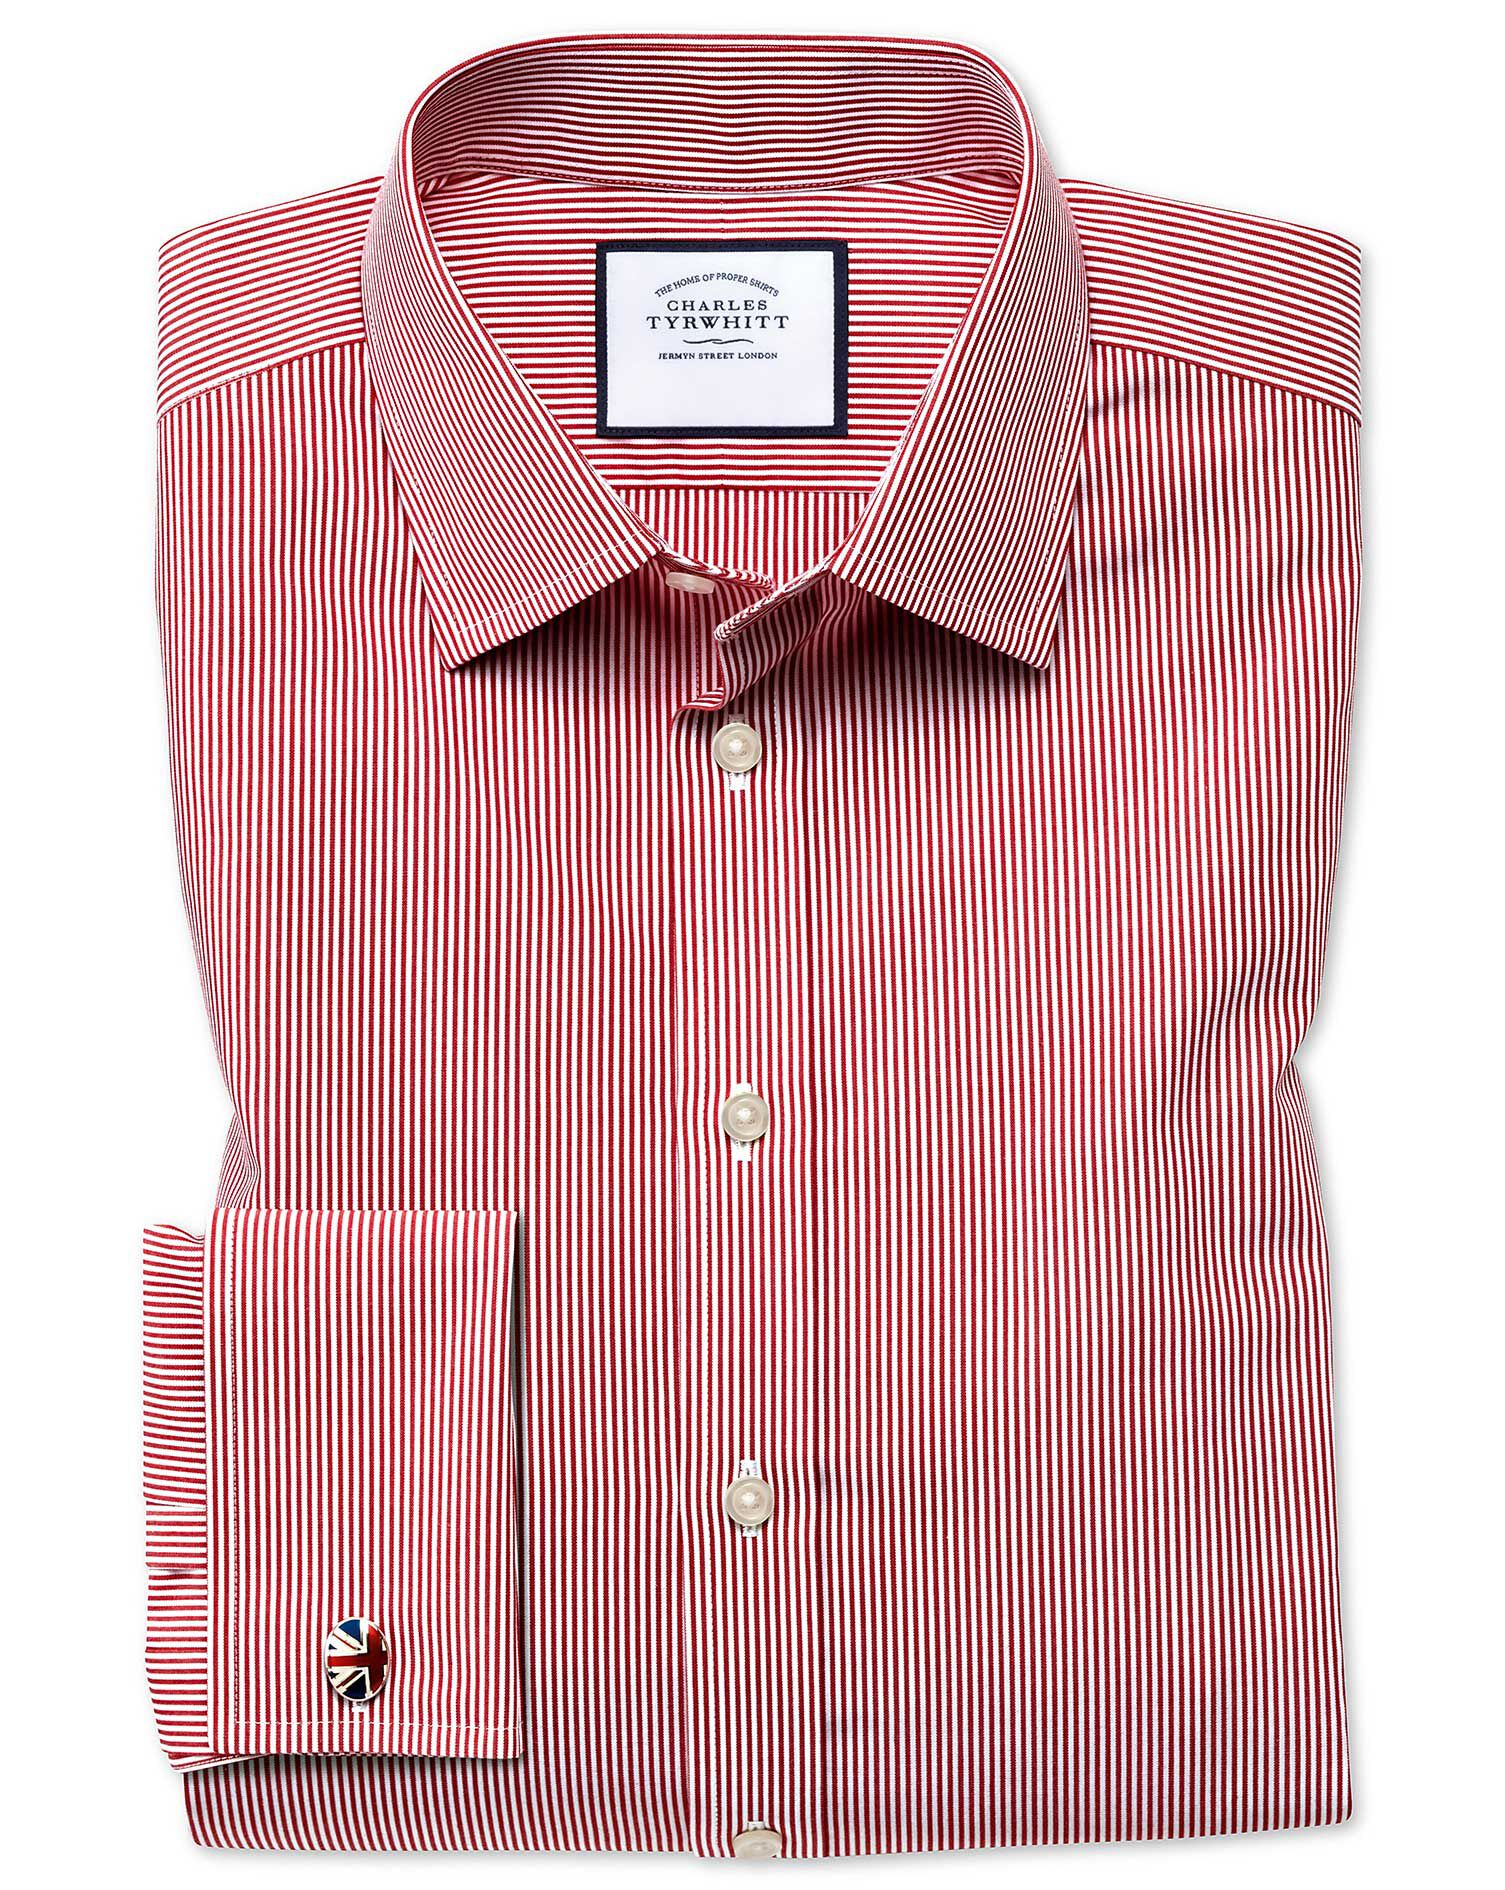 Slim Fit Non-Iron Bengal Stripe Red Cotton Formal Shirt Double Cuff Size 16.5/34 by Charles Tyrwhitt